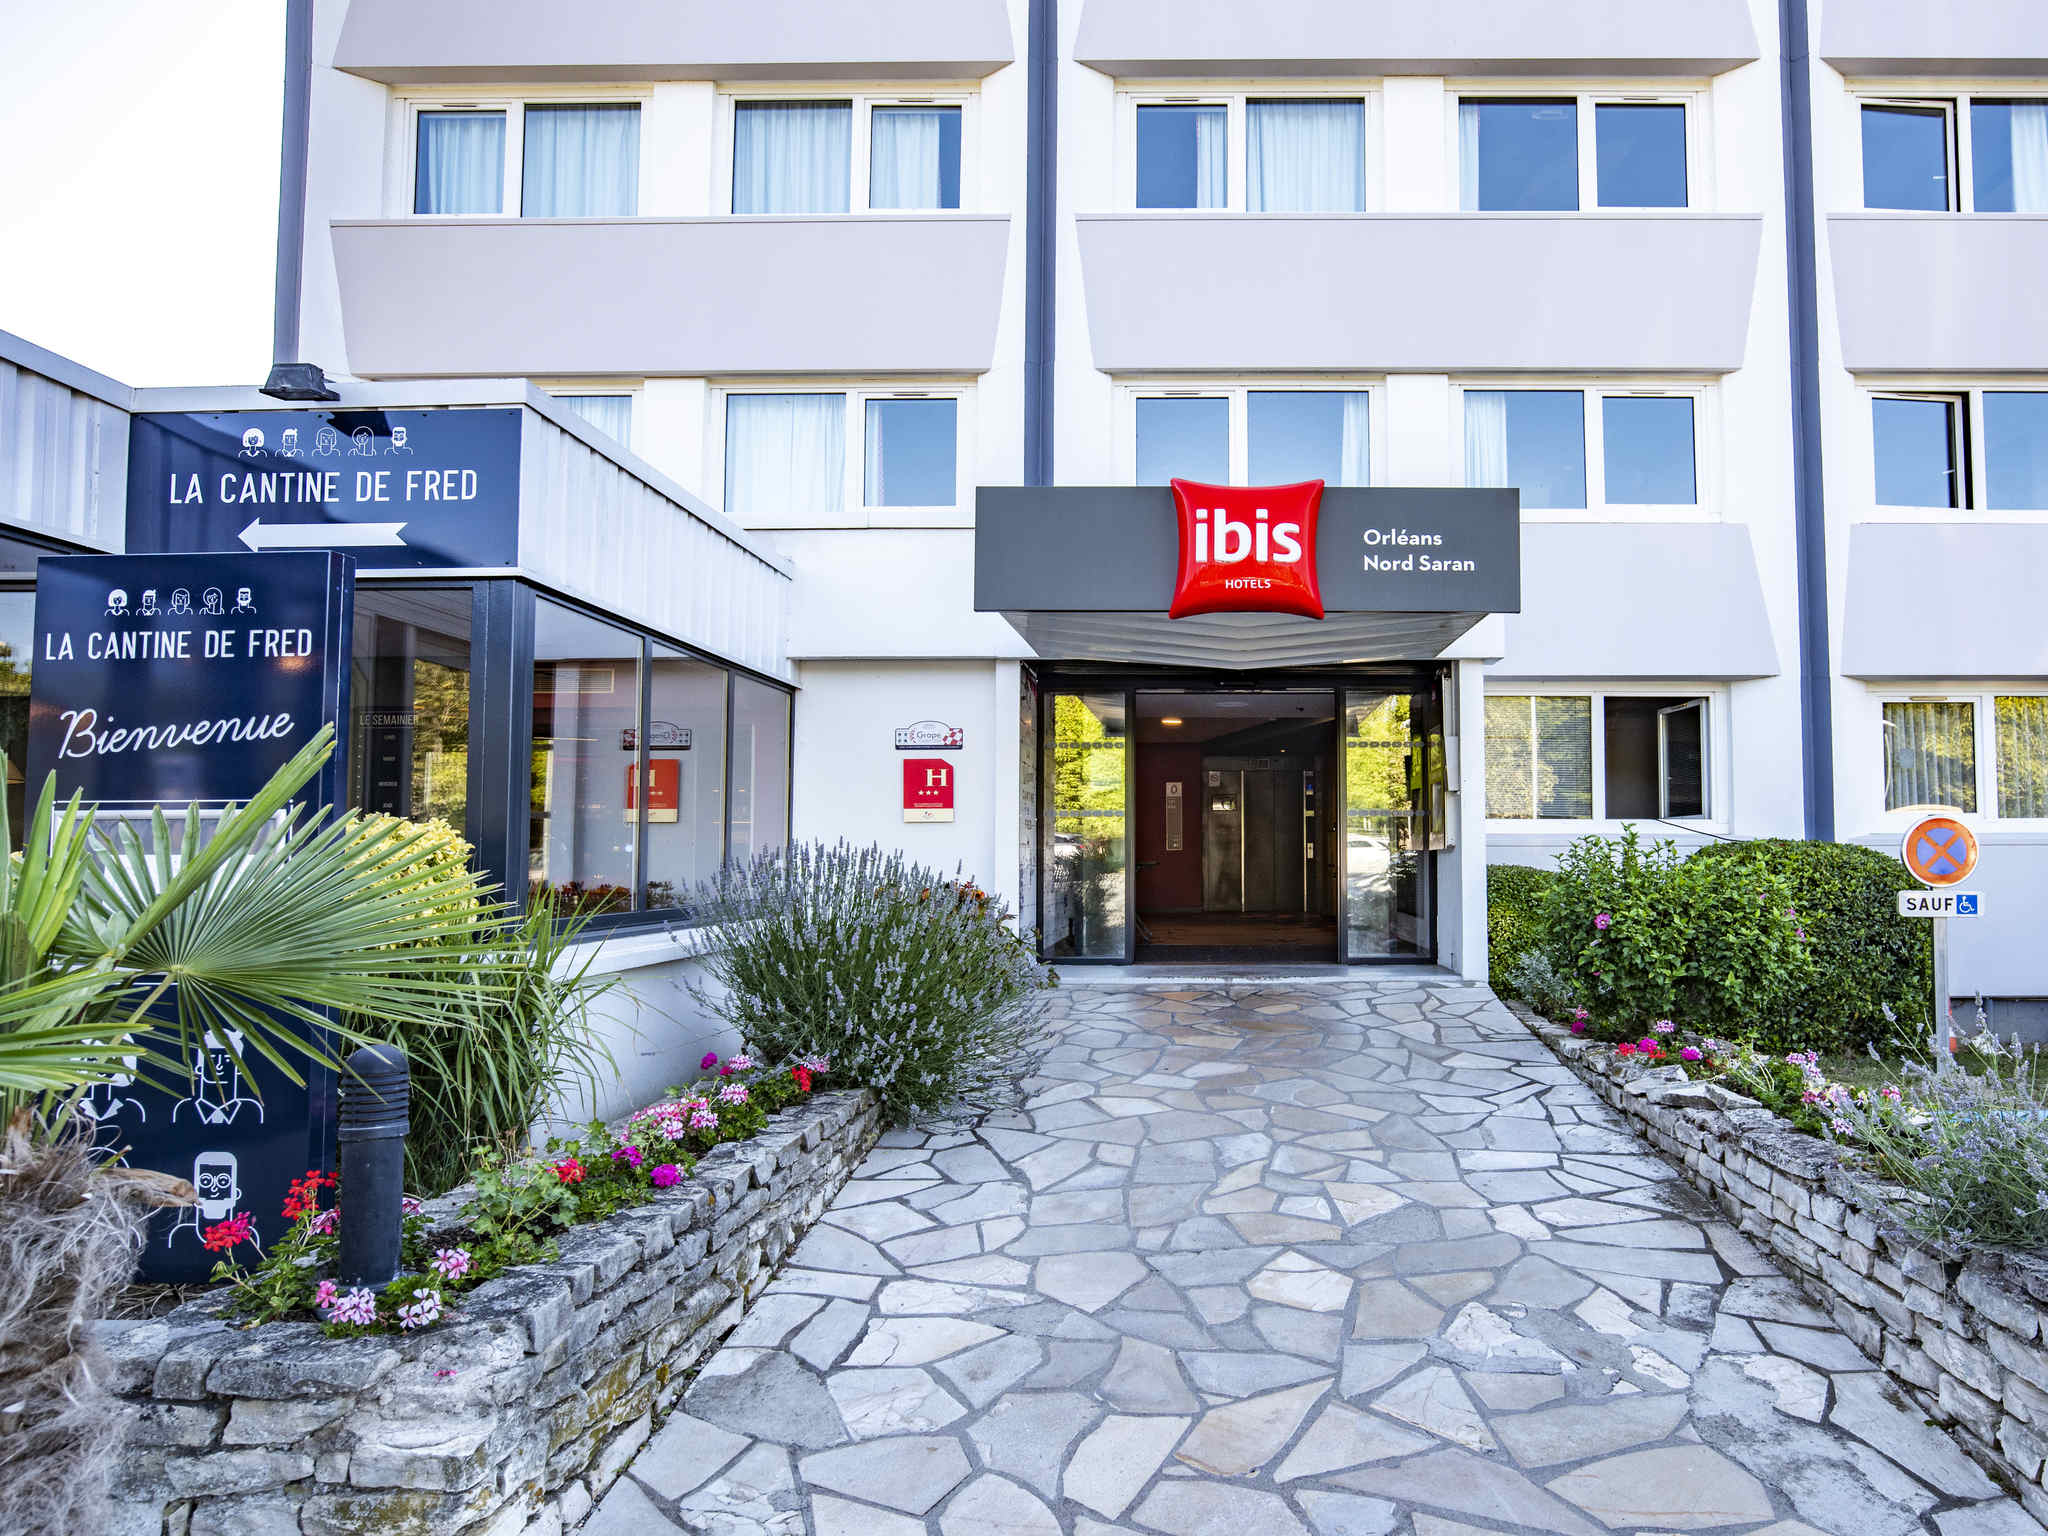 Hotell – ibis Orléans Nord Saran